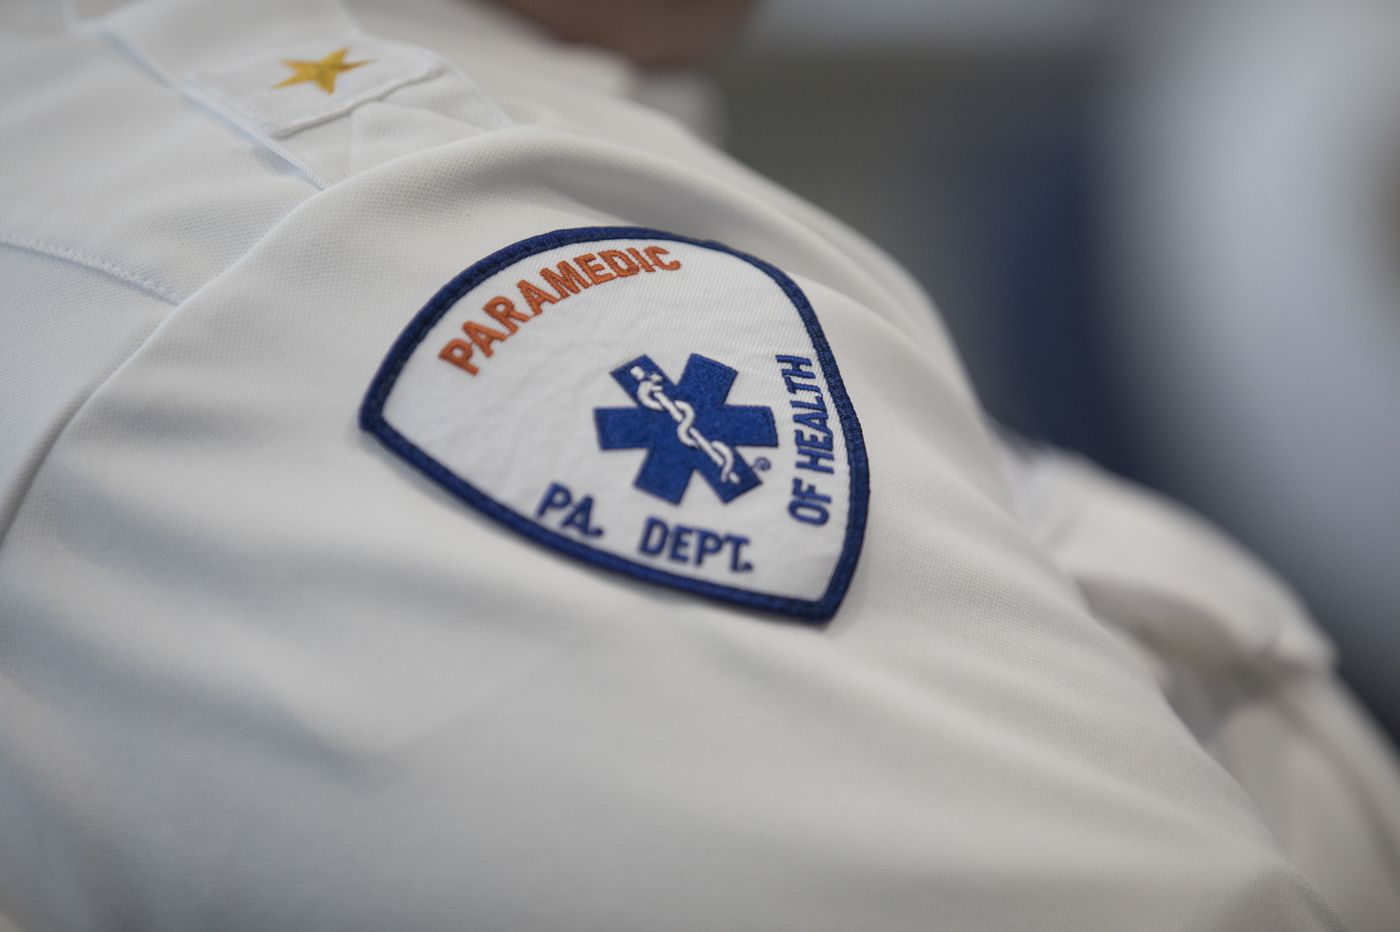 In Pa. suburbs, ambulance companies struggle to stay afloat